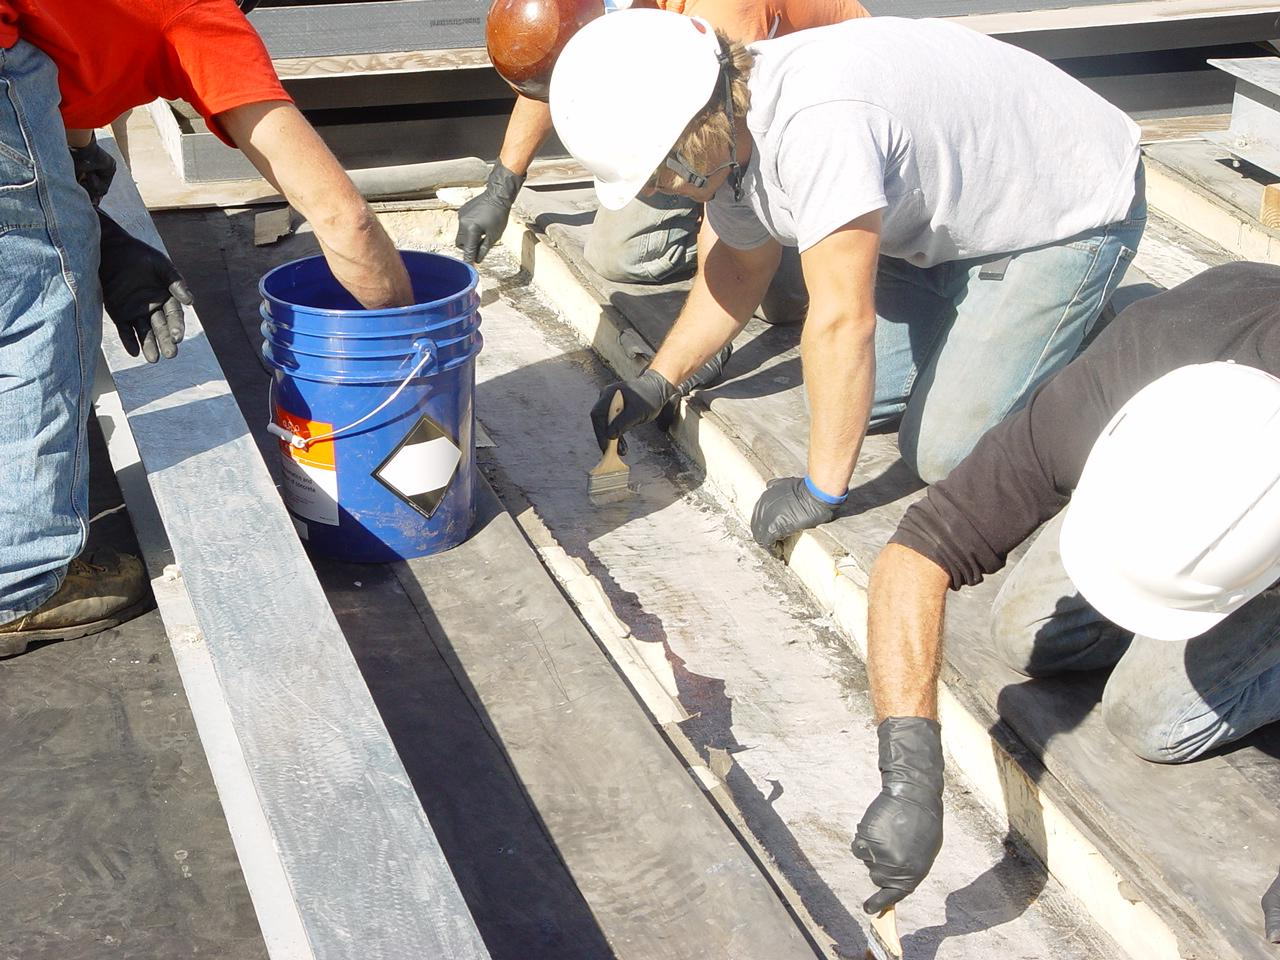 Belzona 4111 used to embed steel beam into the roof